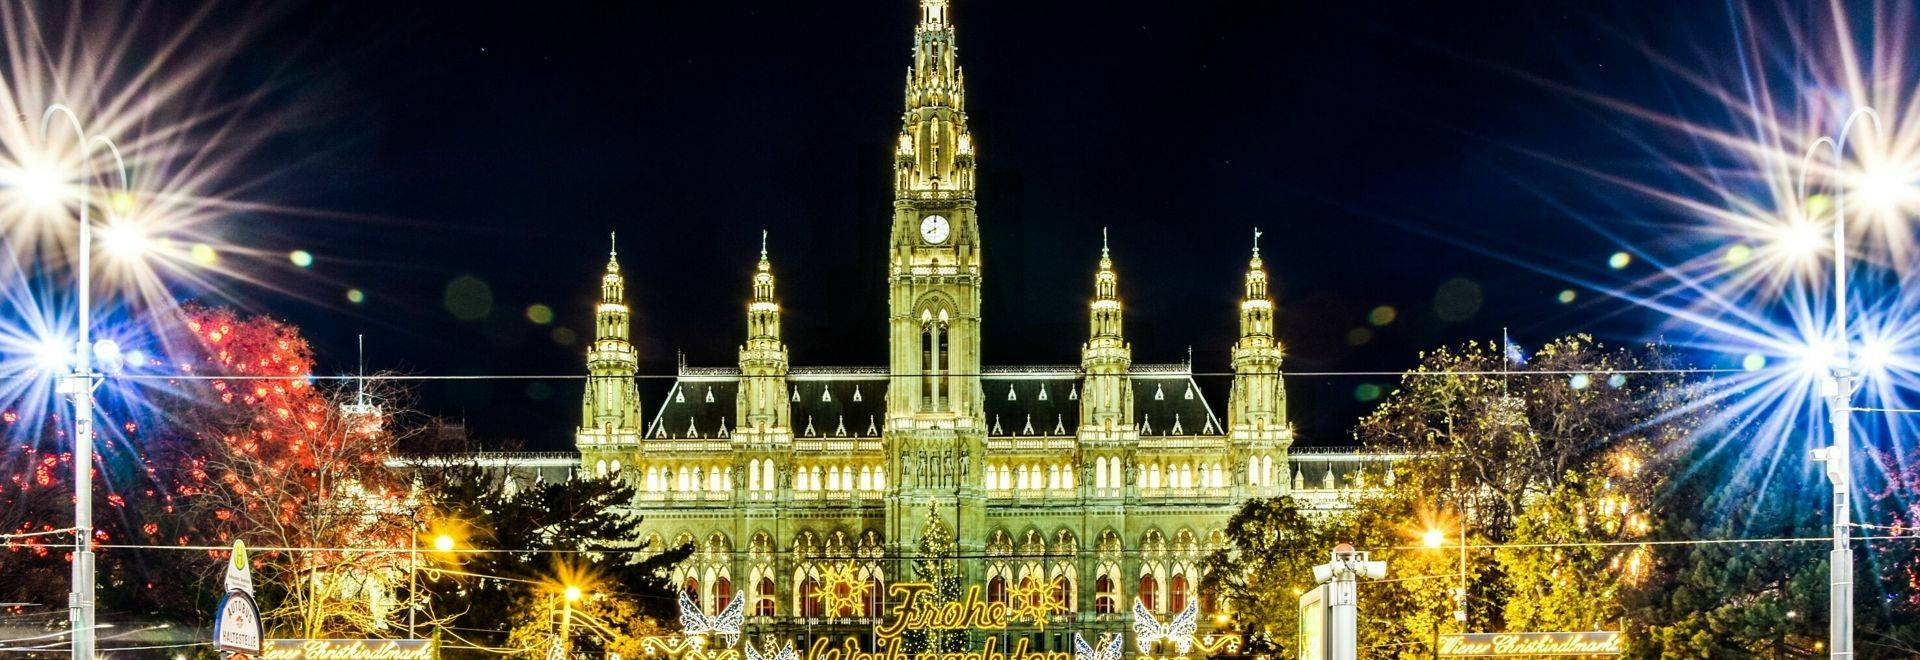 GettyImages-606377841 Illuminated Vienna Town Hall Against Sky At Night.jpg